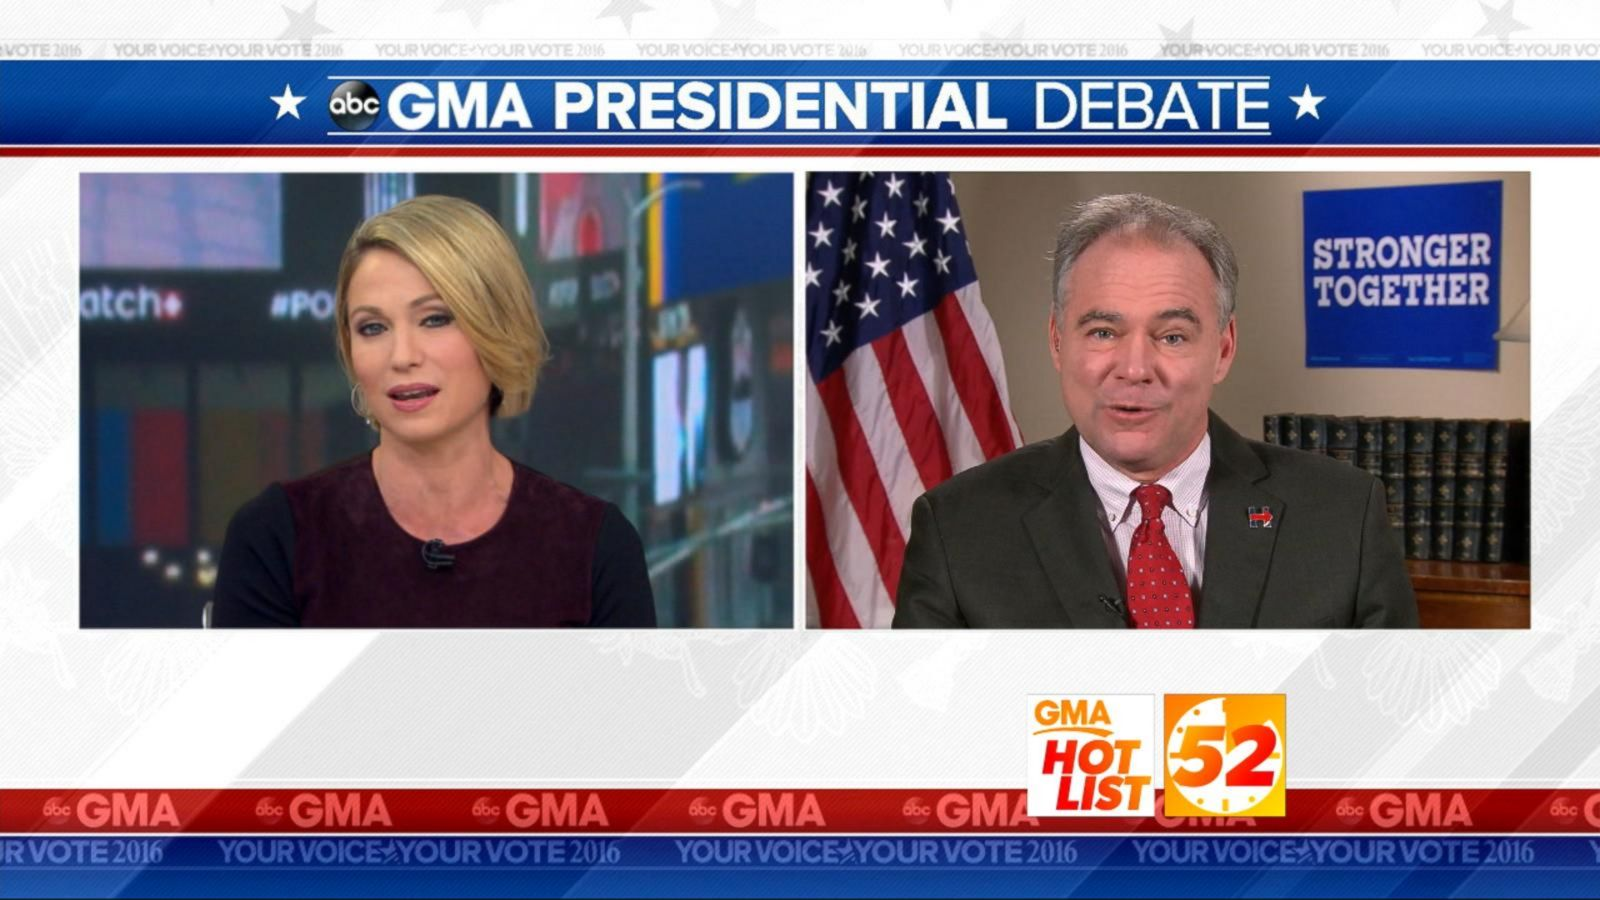 VIDEO: 'GMA' Hot List: Tim Kaine Talks Donald Trump's 'Shocking' Debate Comments